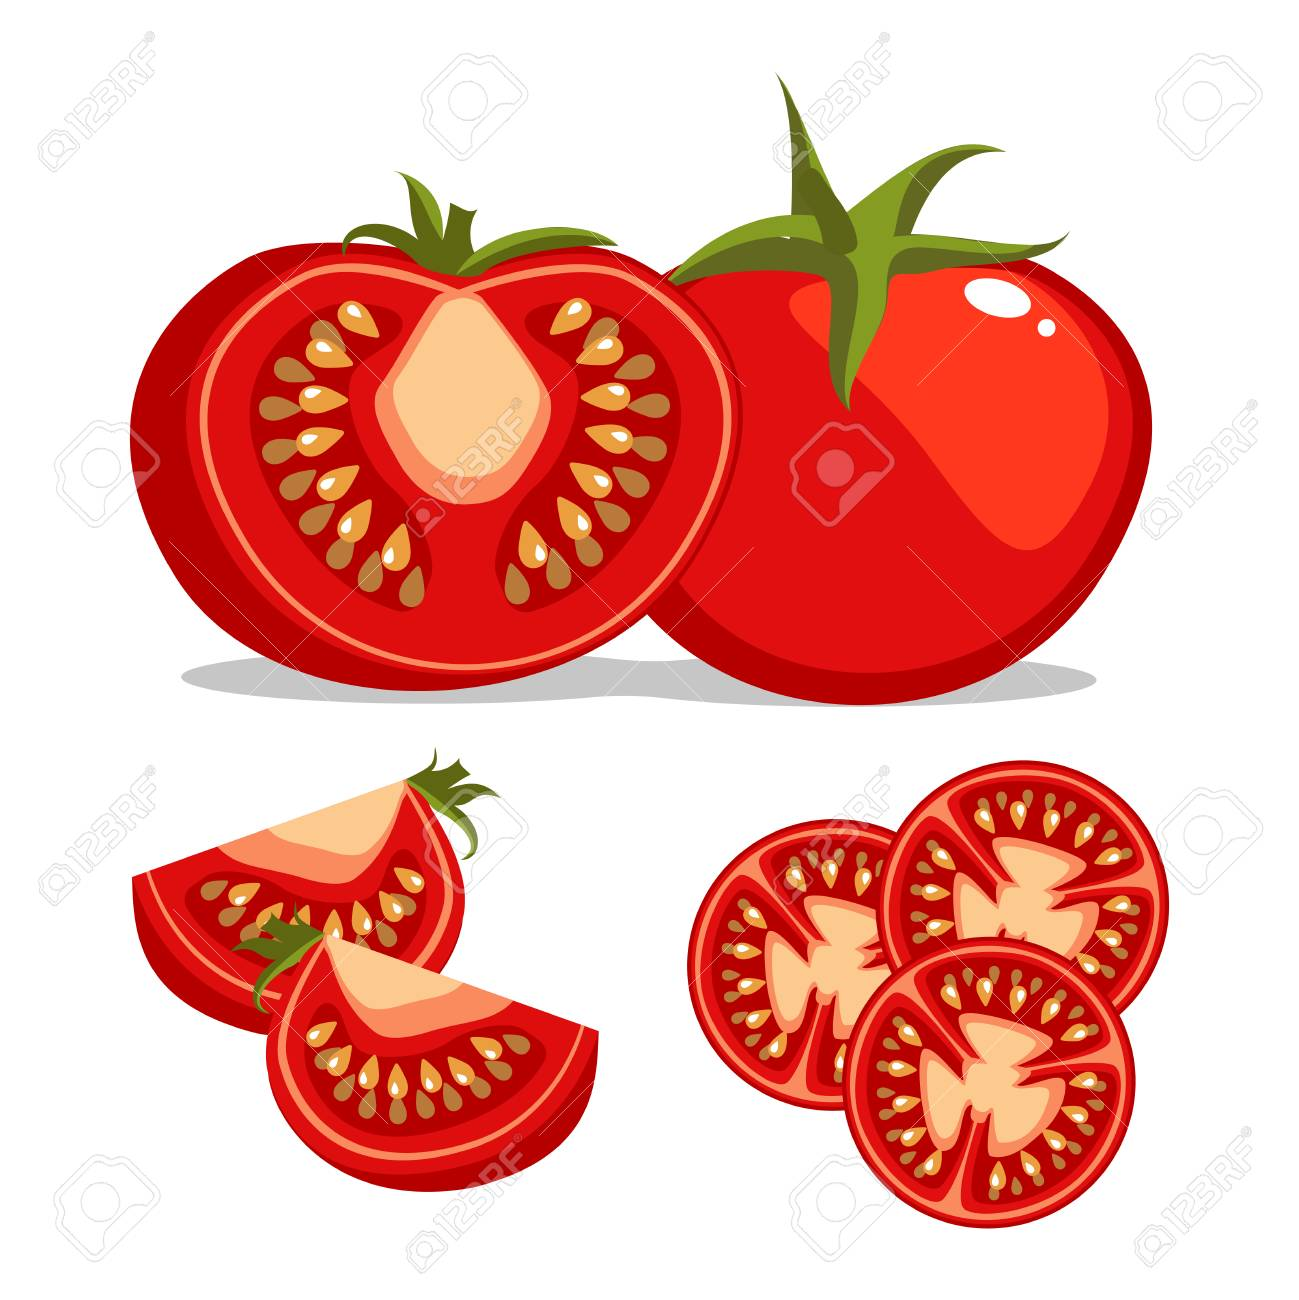 Tomatoes clipart tomato seed. Collection of free hal